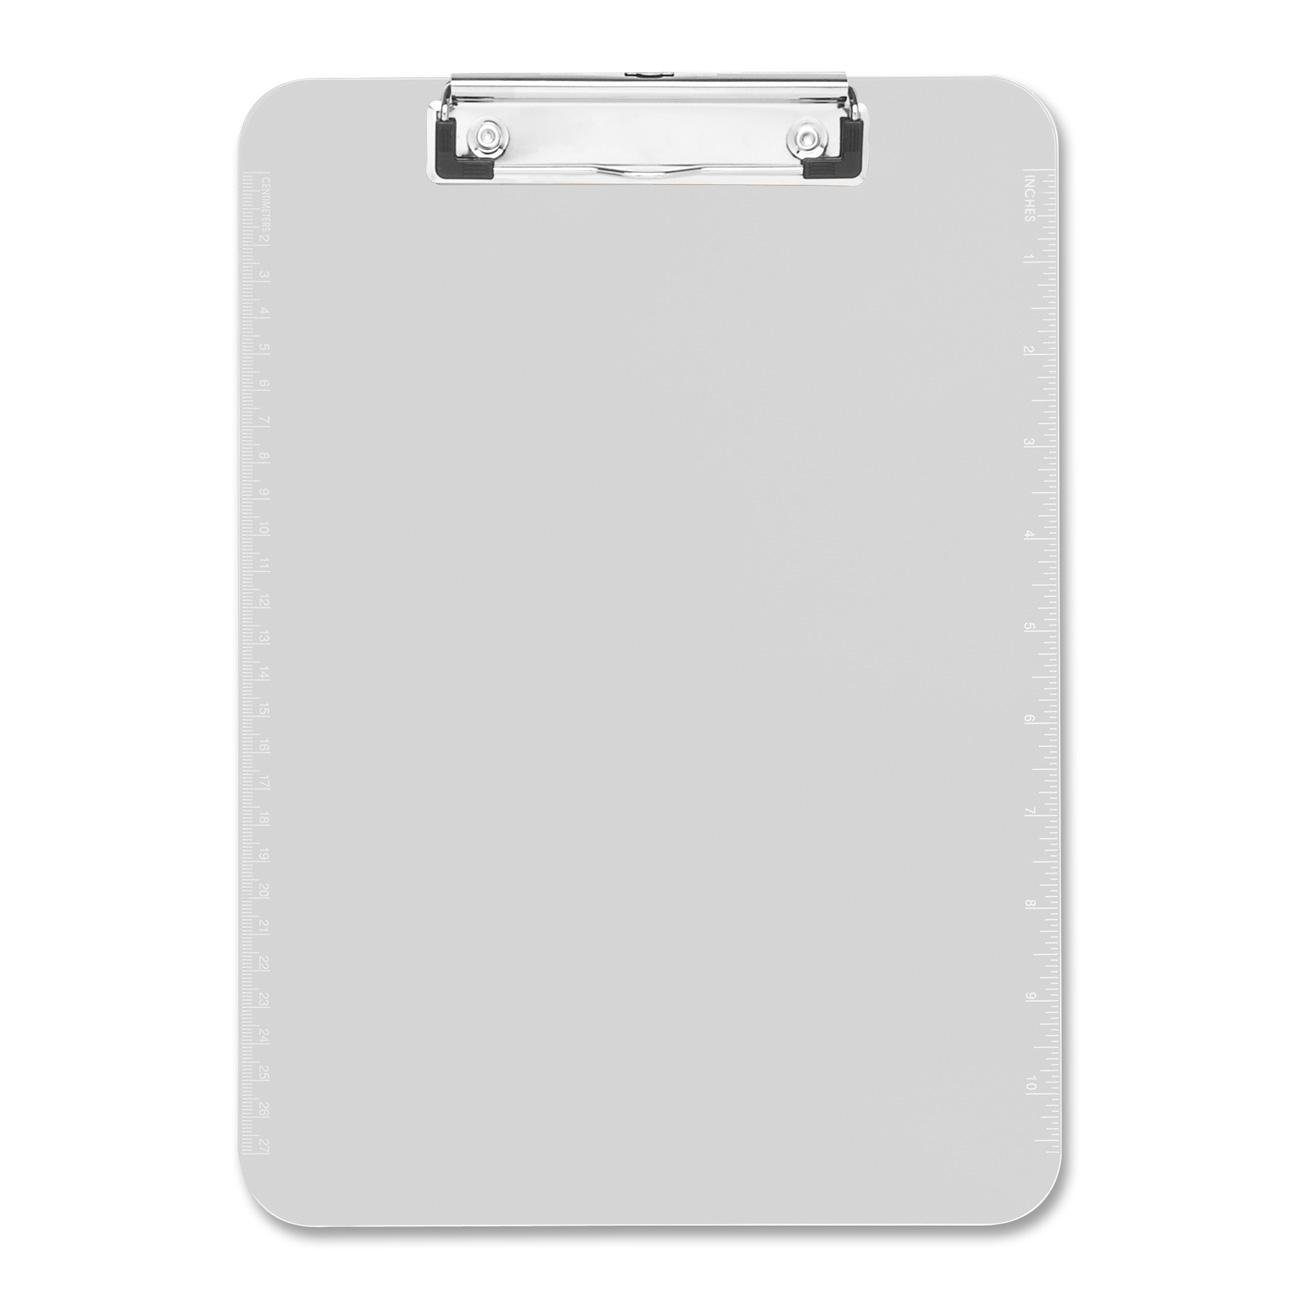 BananaB Plastic Clipboard, with Flat Clip, 9 x 12 Inches